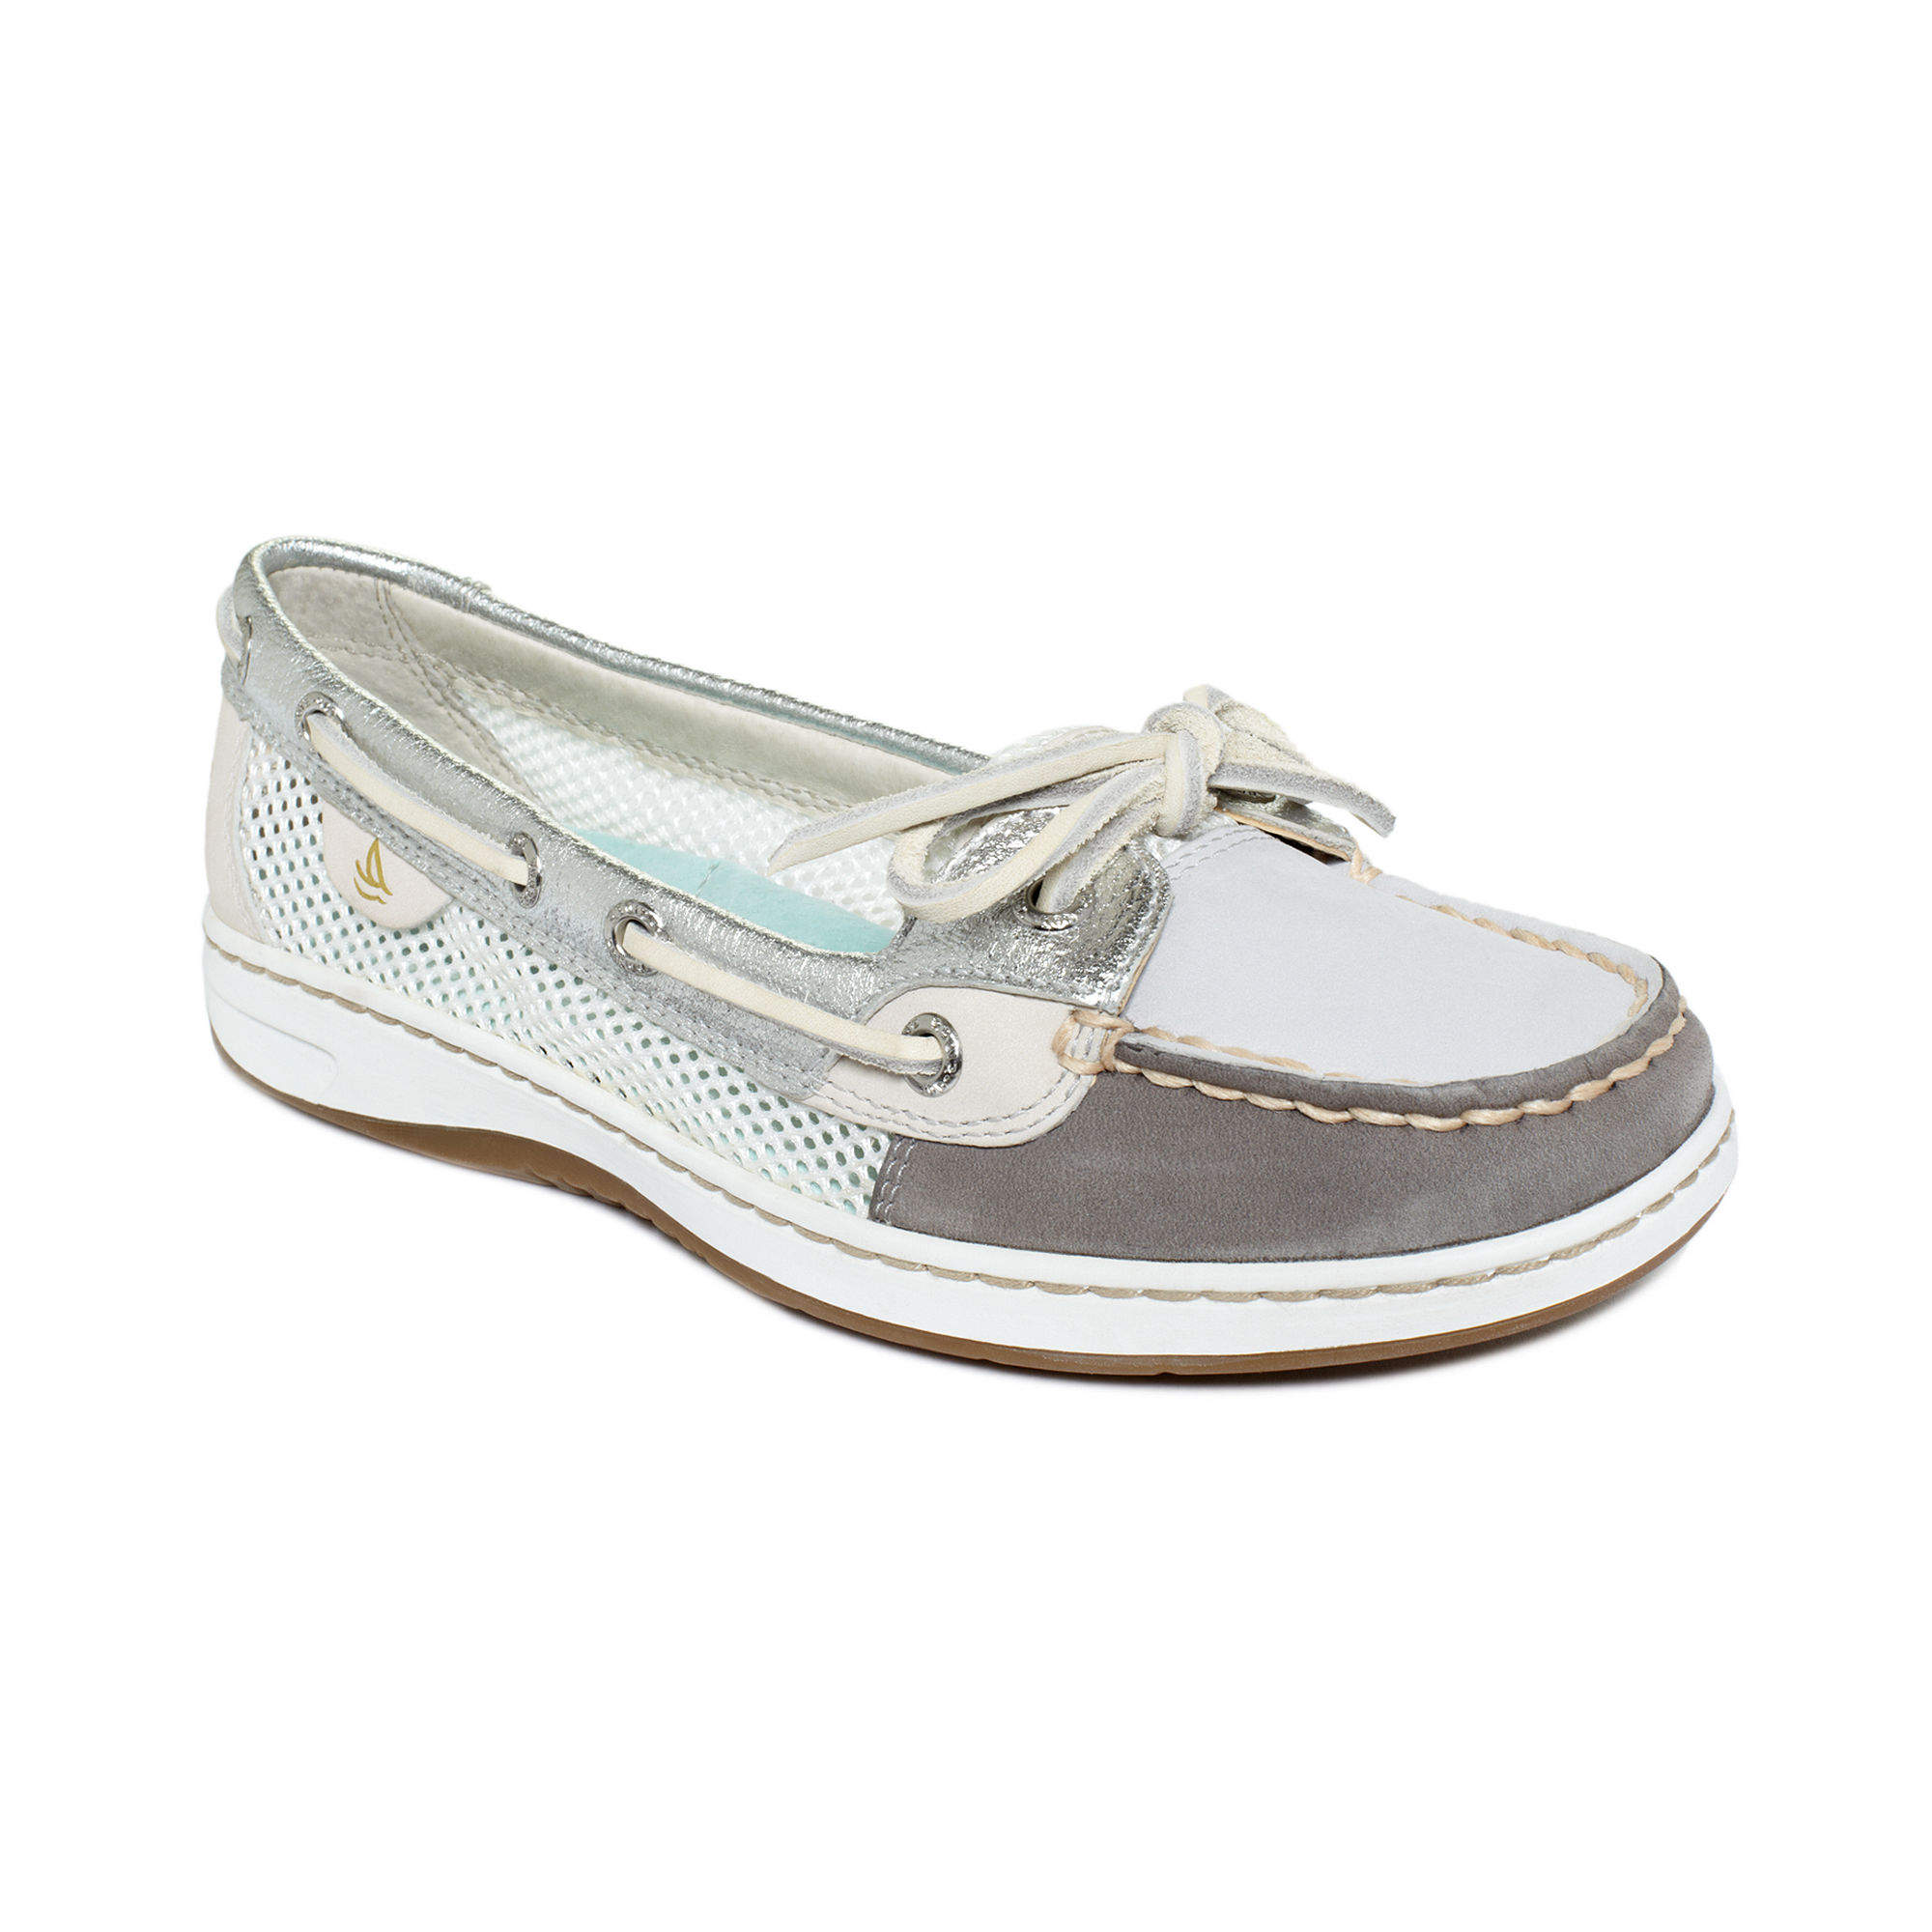 Sperry Top Sider Bahama Boat Shoes Gray Womens